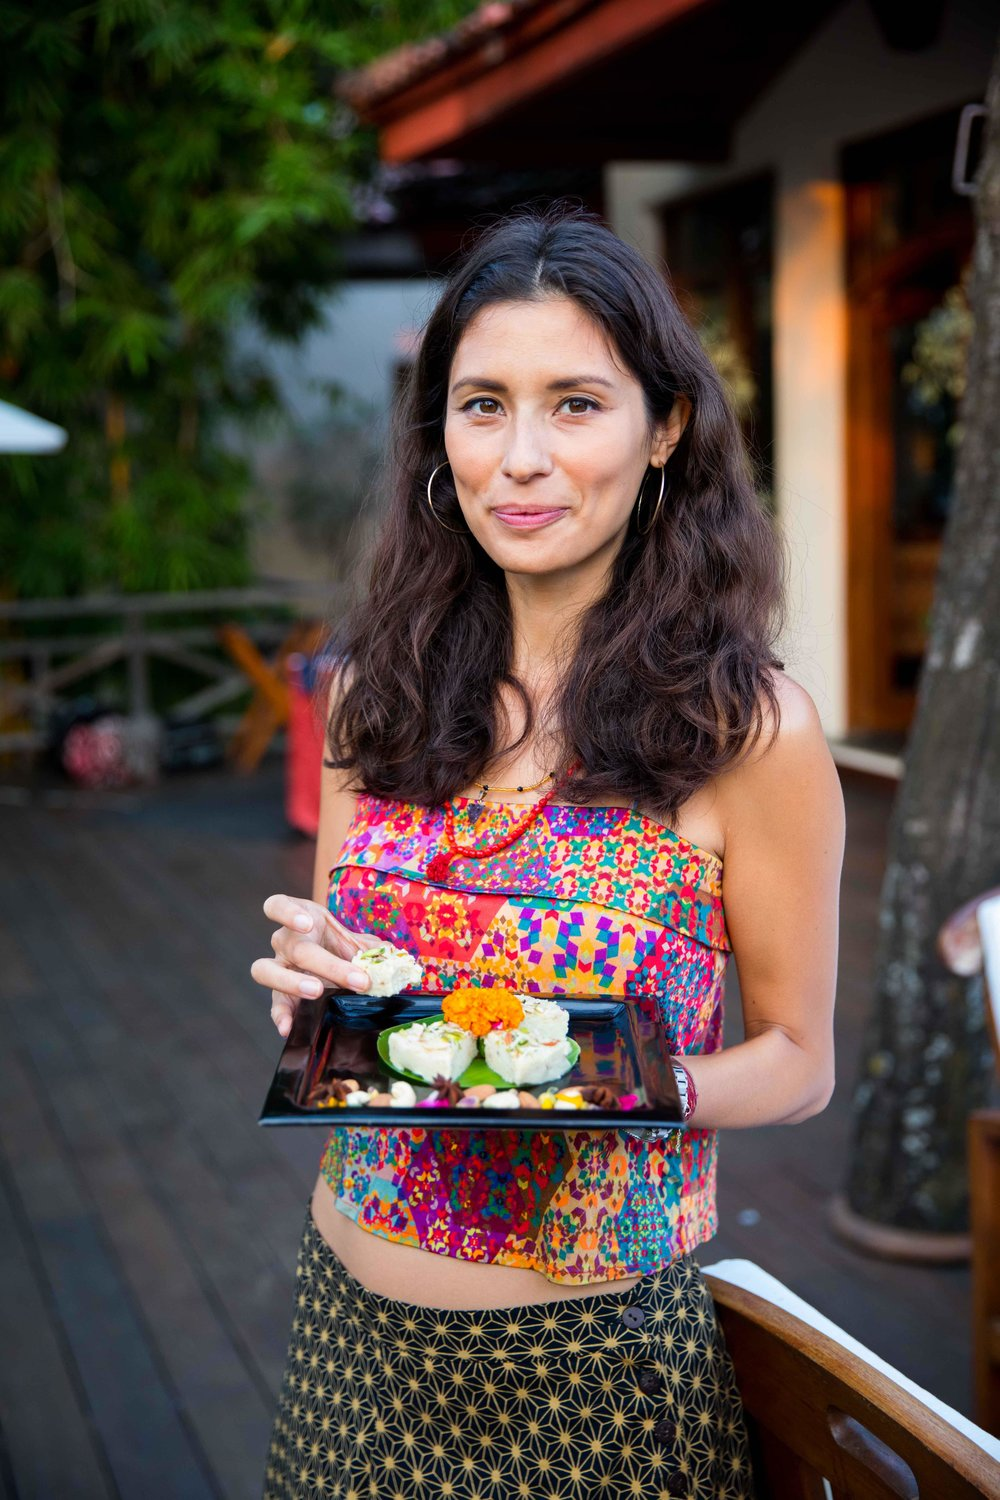 EastbyWest_JasmineHemsley_Divali_SM-7406.jpg